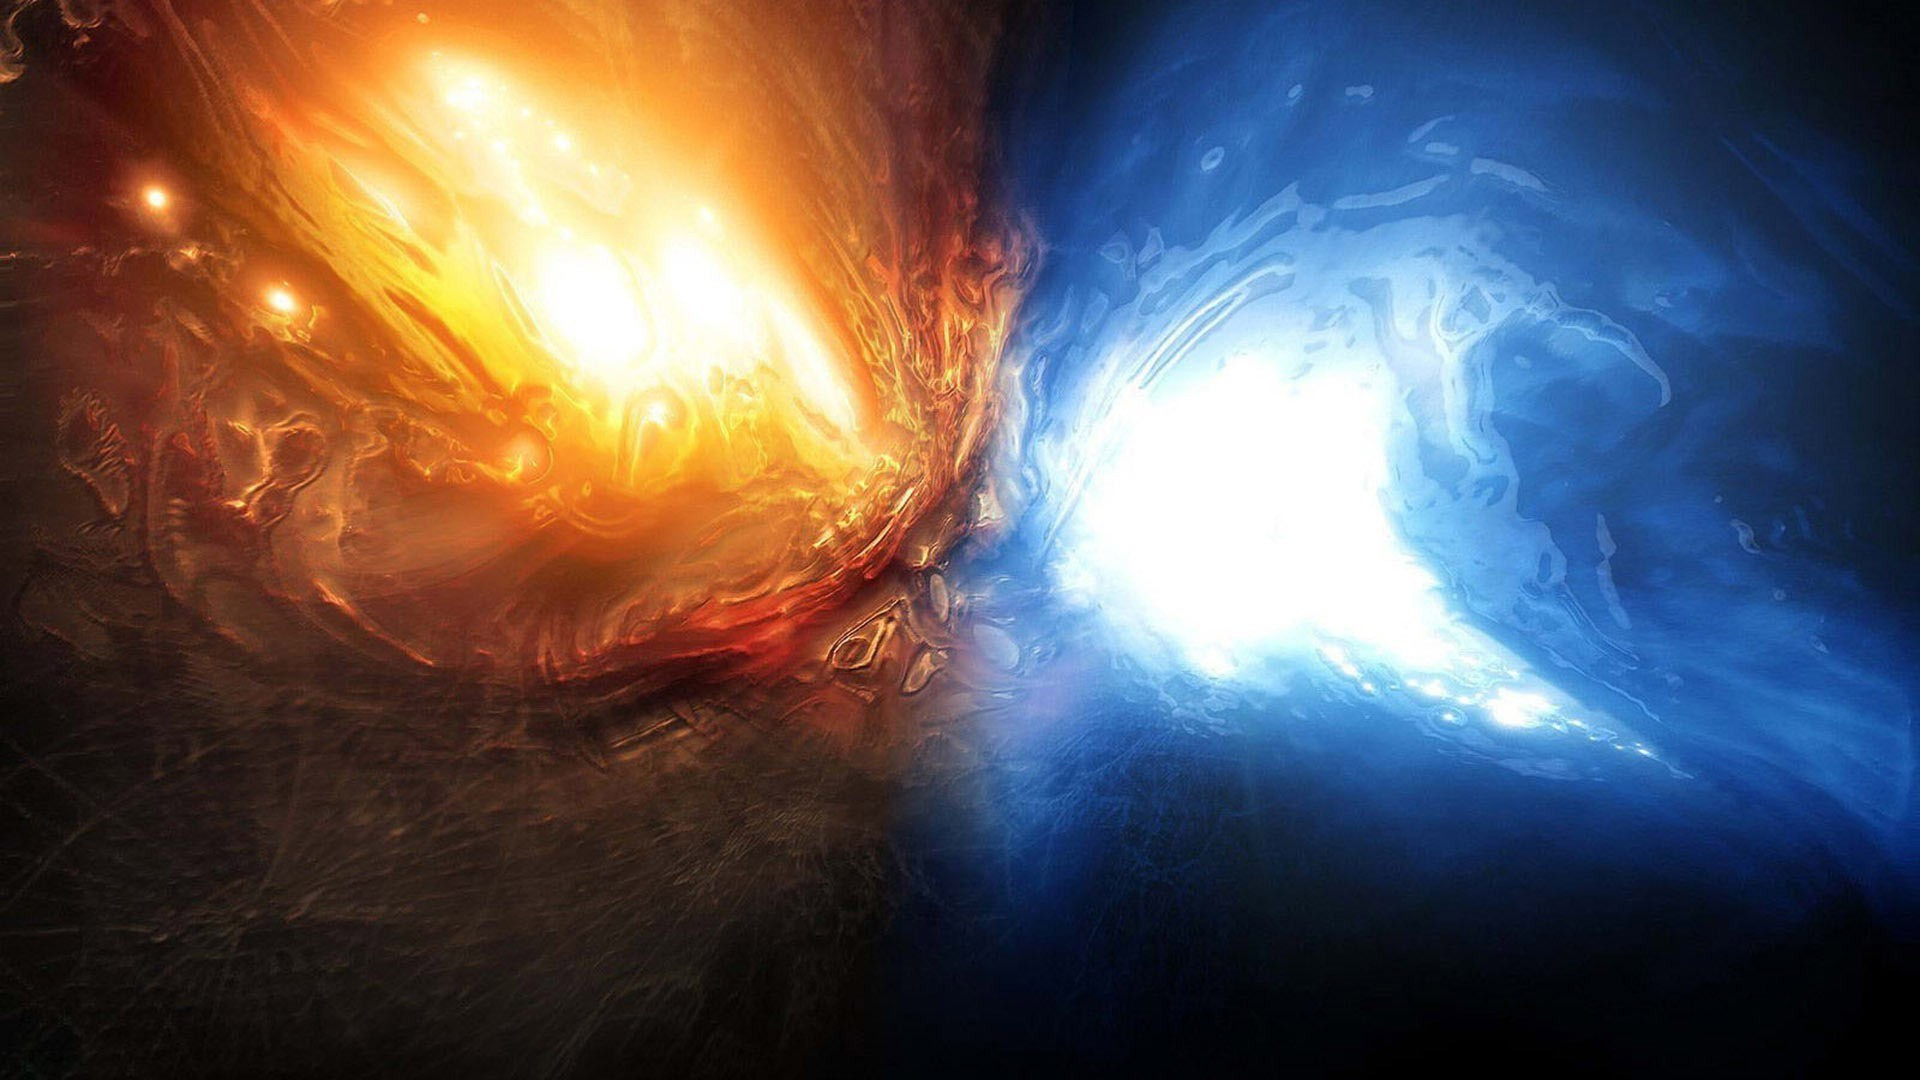 Water abstract blue red fire Earth artwork wallpaper | .